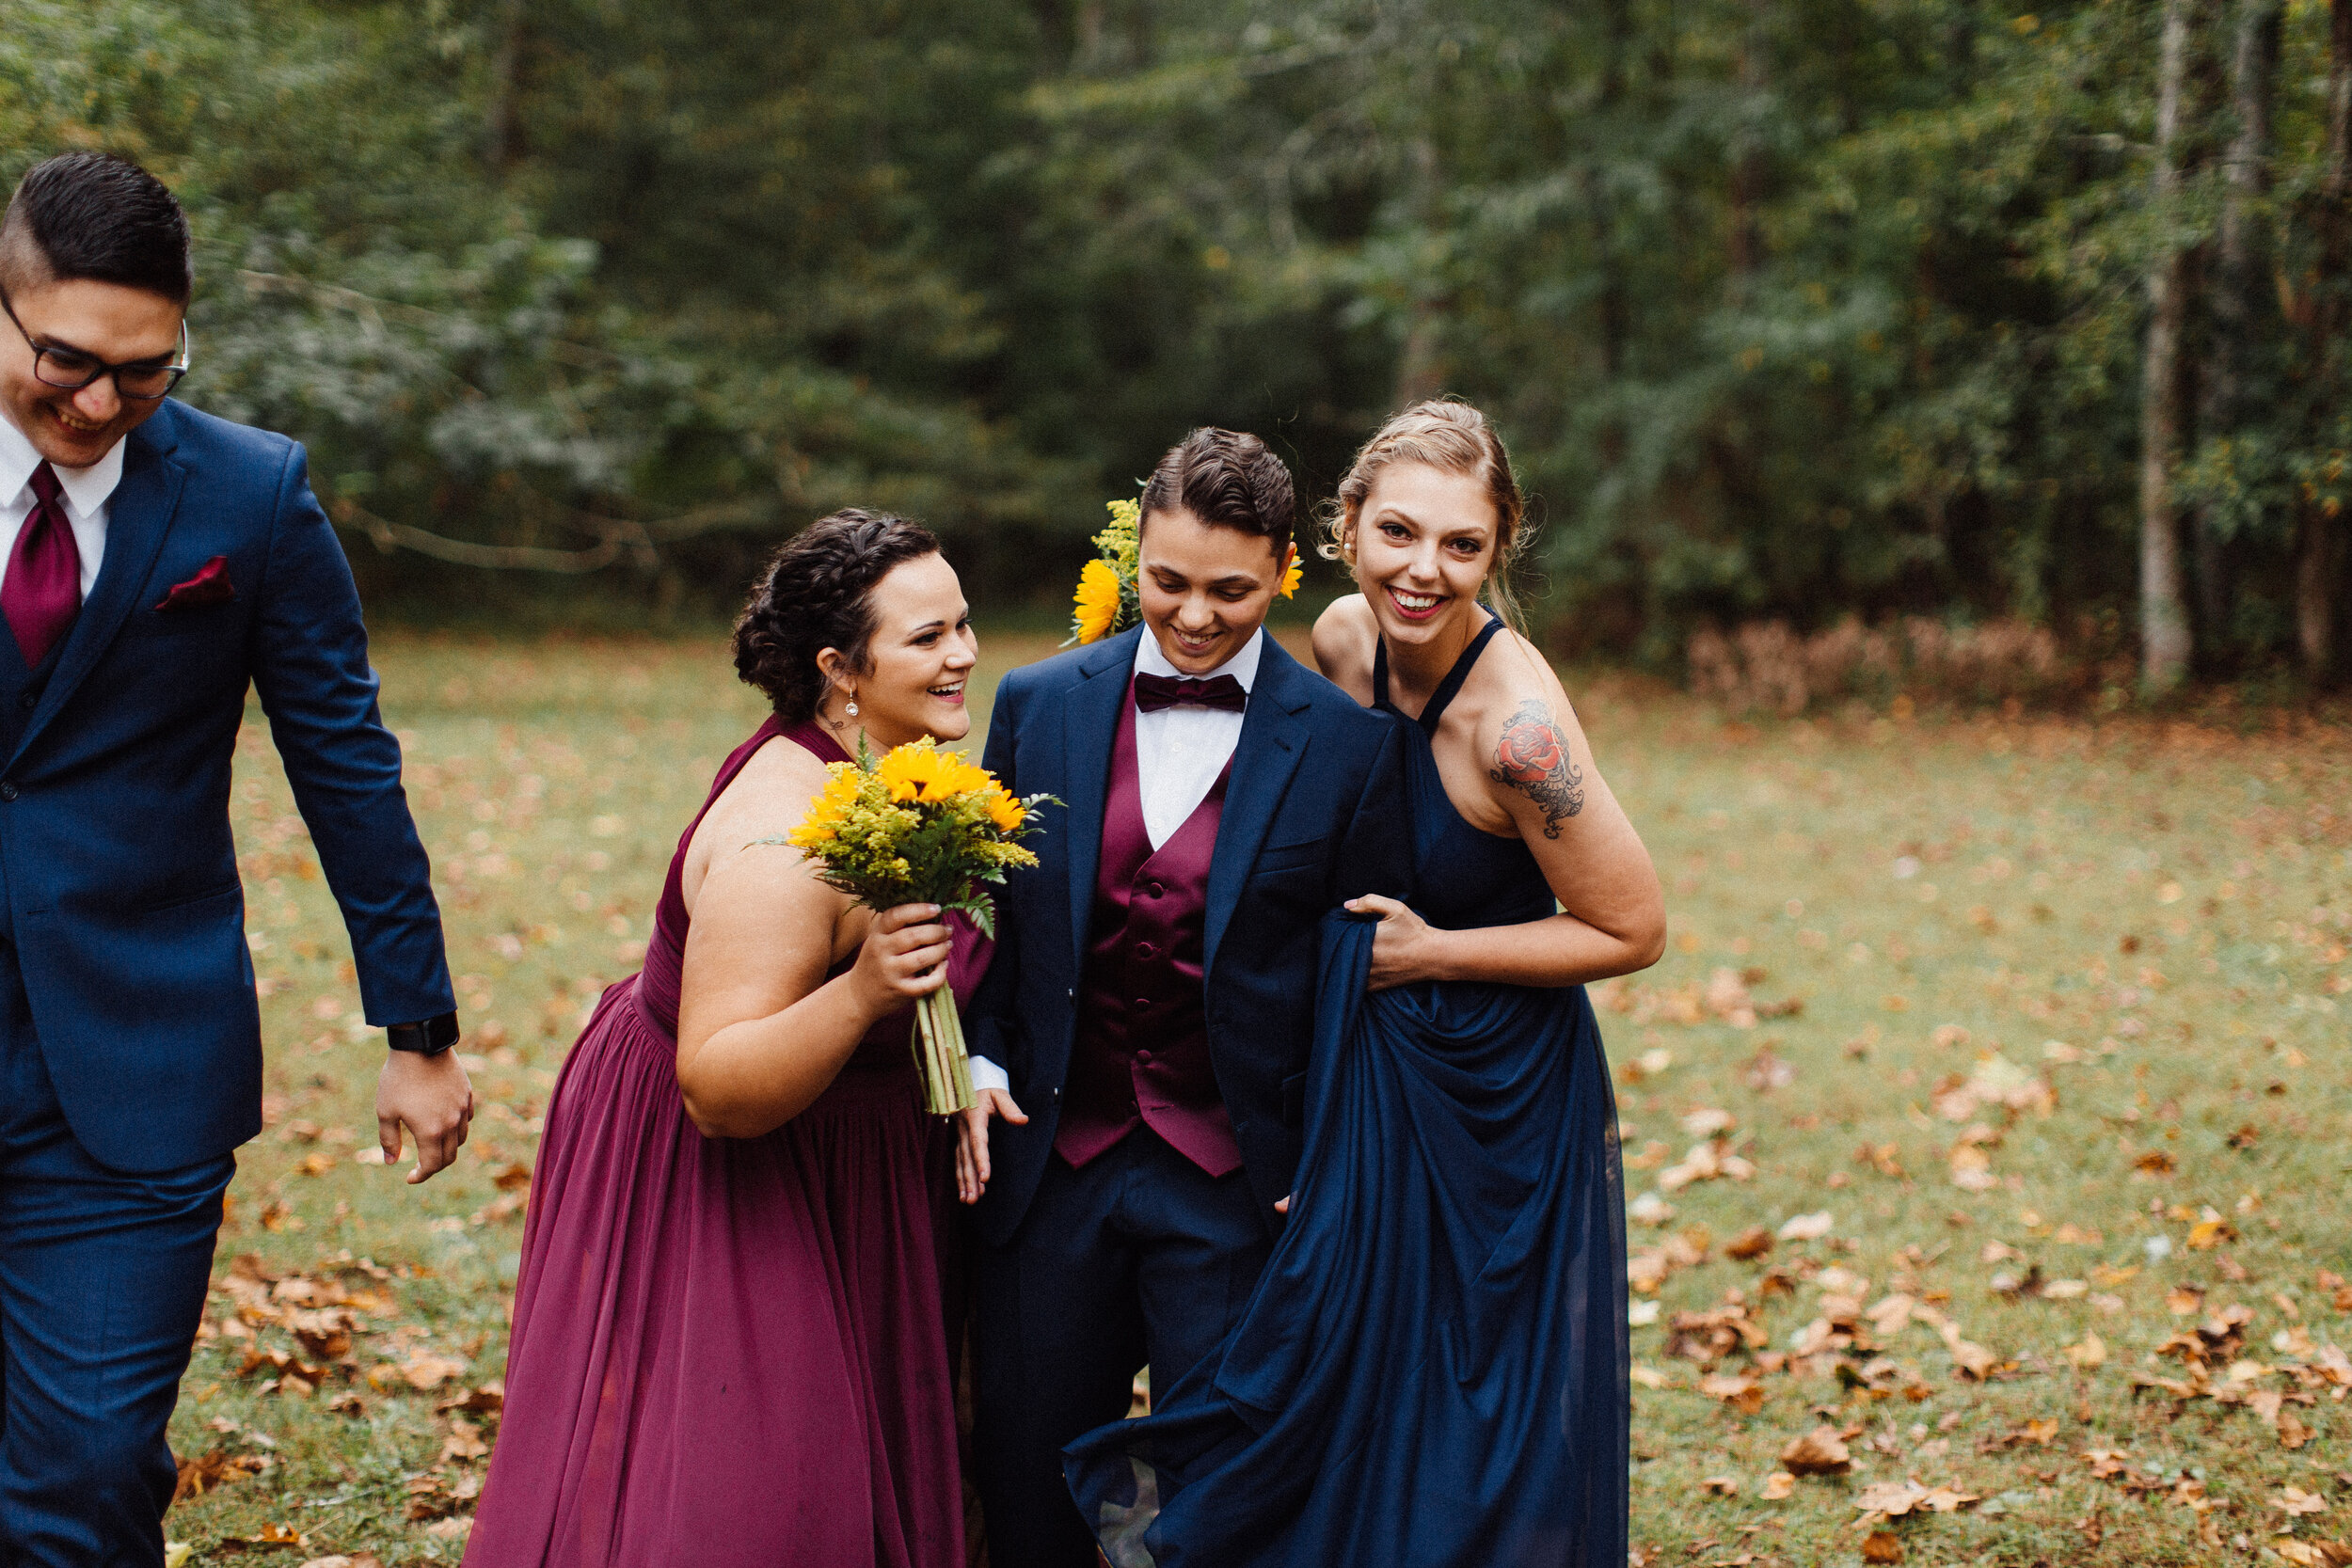 atlanta_wedding_photographers_georgia_same_sex_rustic_barn_farm_lesbian_weddings_inclusive_1311.jpg